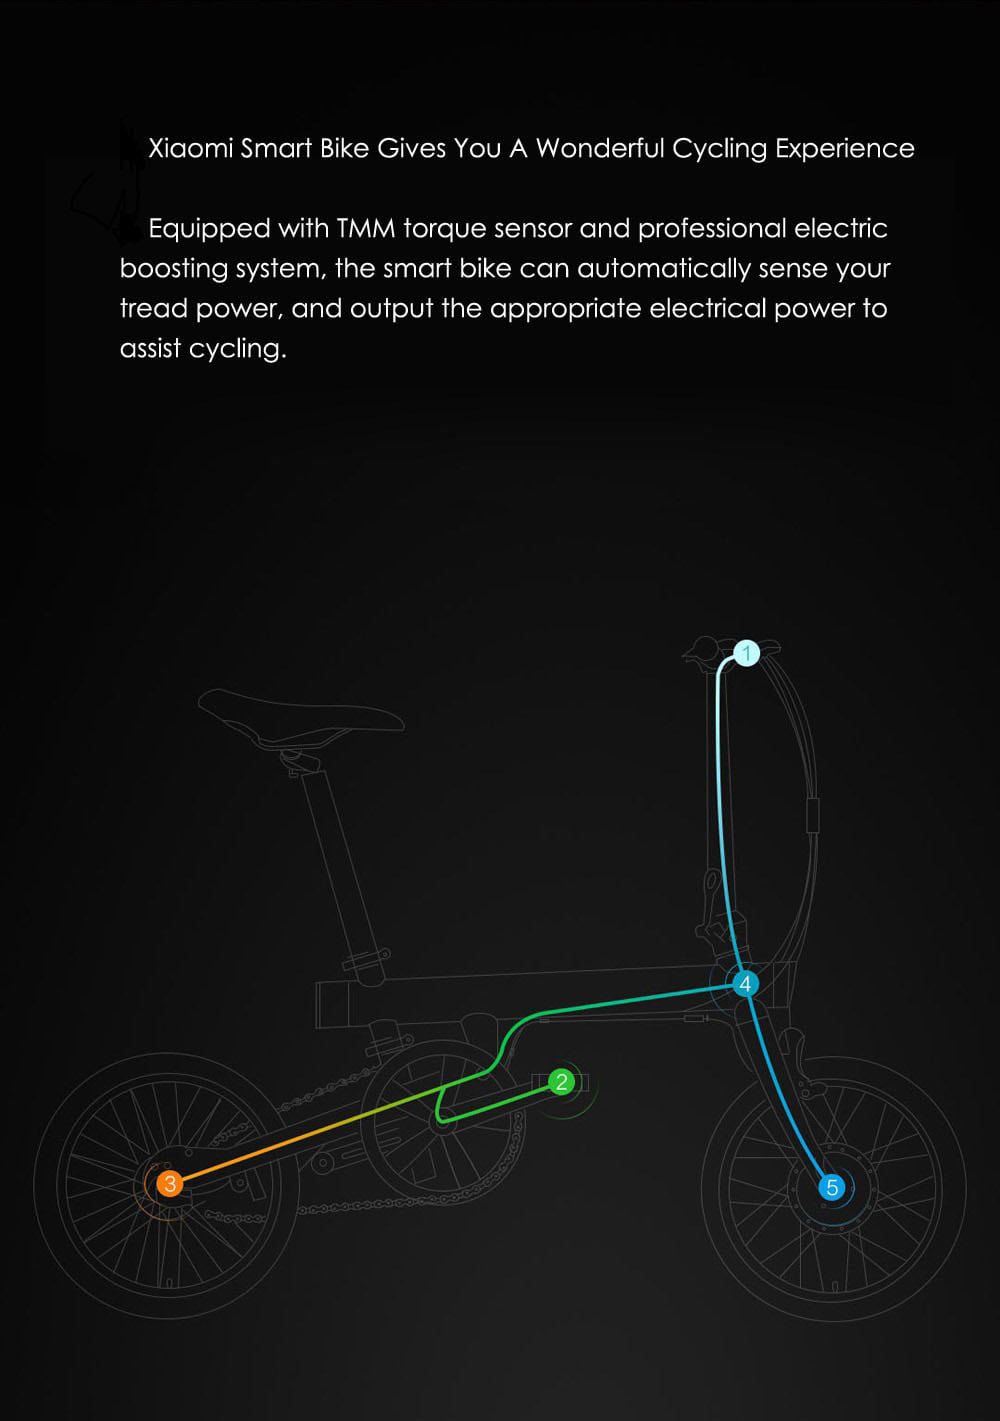 HTB1RRf7XDQspeRjt a0q6zPbFXaQ - 16inch Origina XIAOMI electrical bike Qicycle EF1 Mini electrical Ebike good folding  bike lithium battery mijia  CITY EBIKE